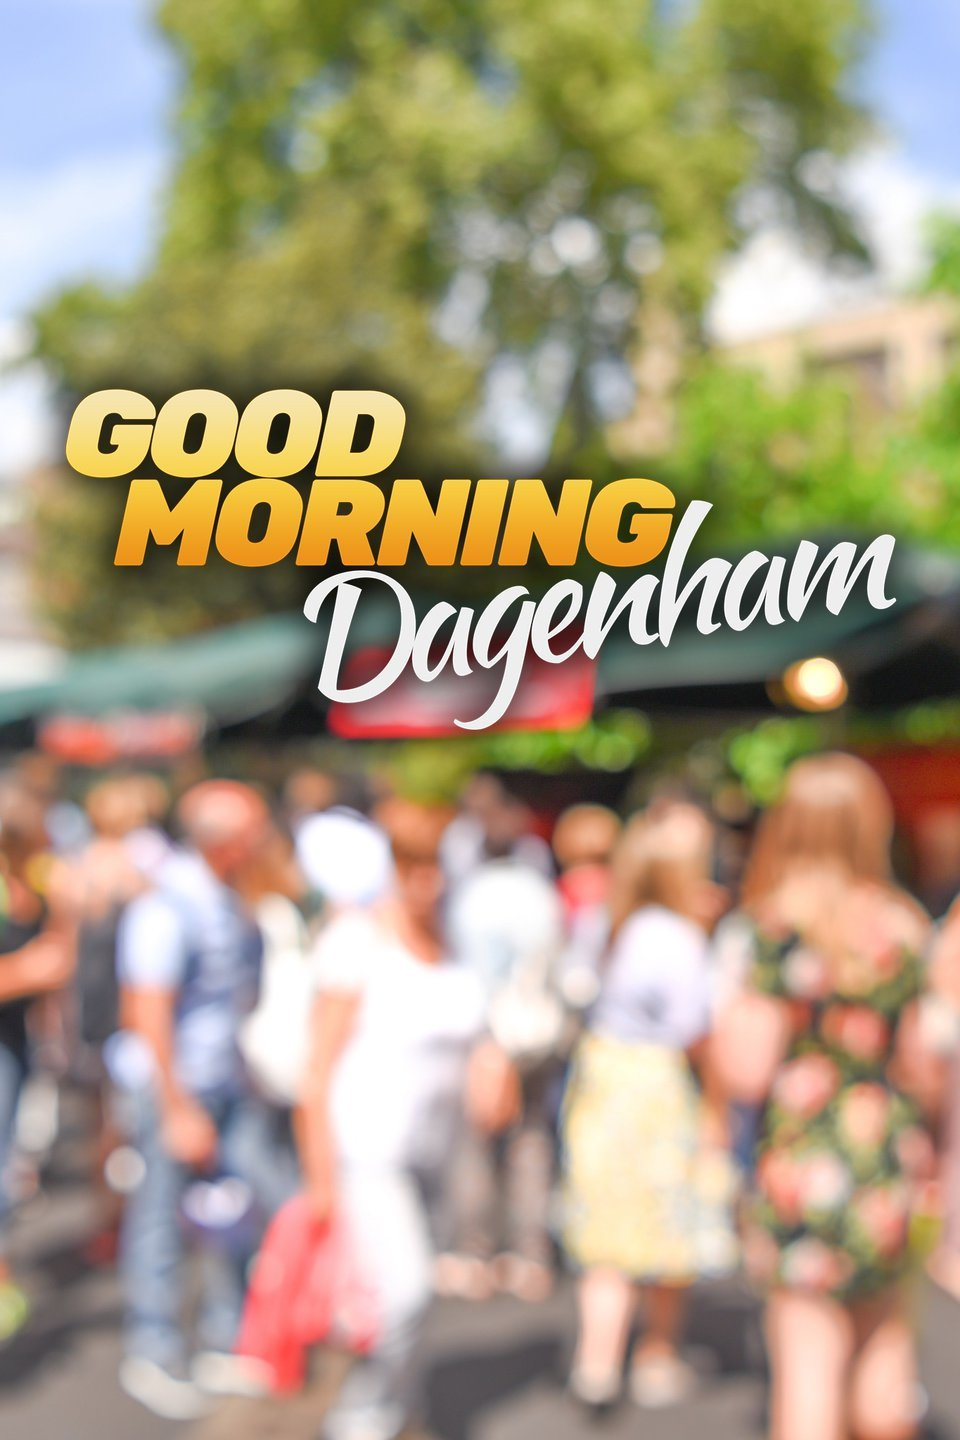 Good Morning Dagenham - Season 1 Episode 10